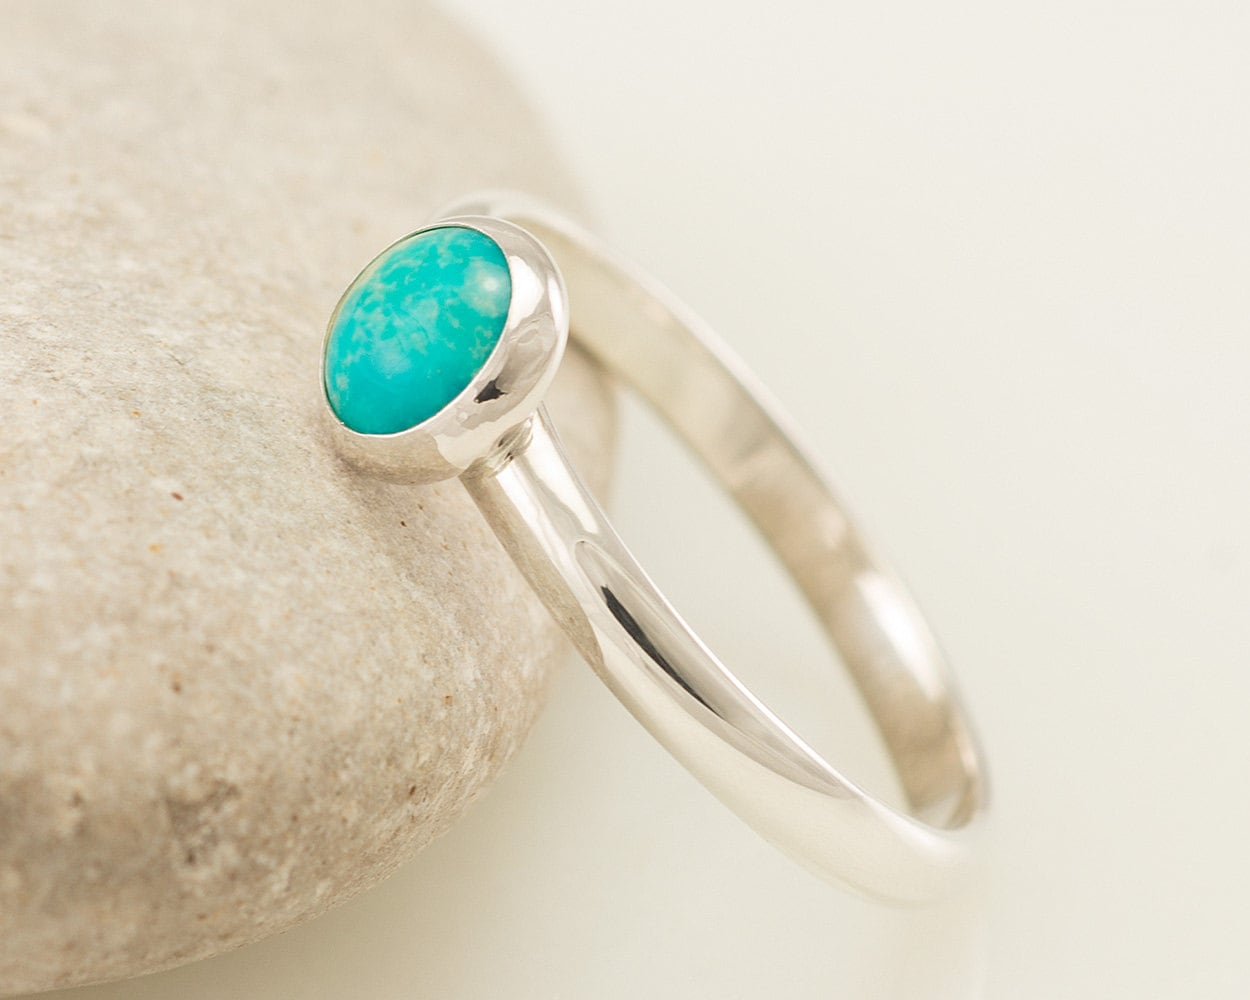 stones stone rings mood best beautiful circular ring shop